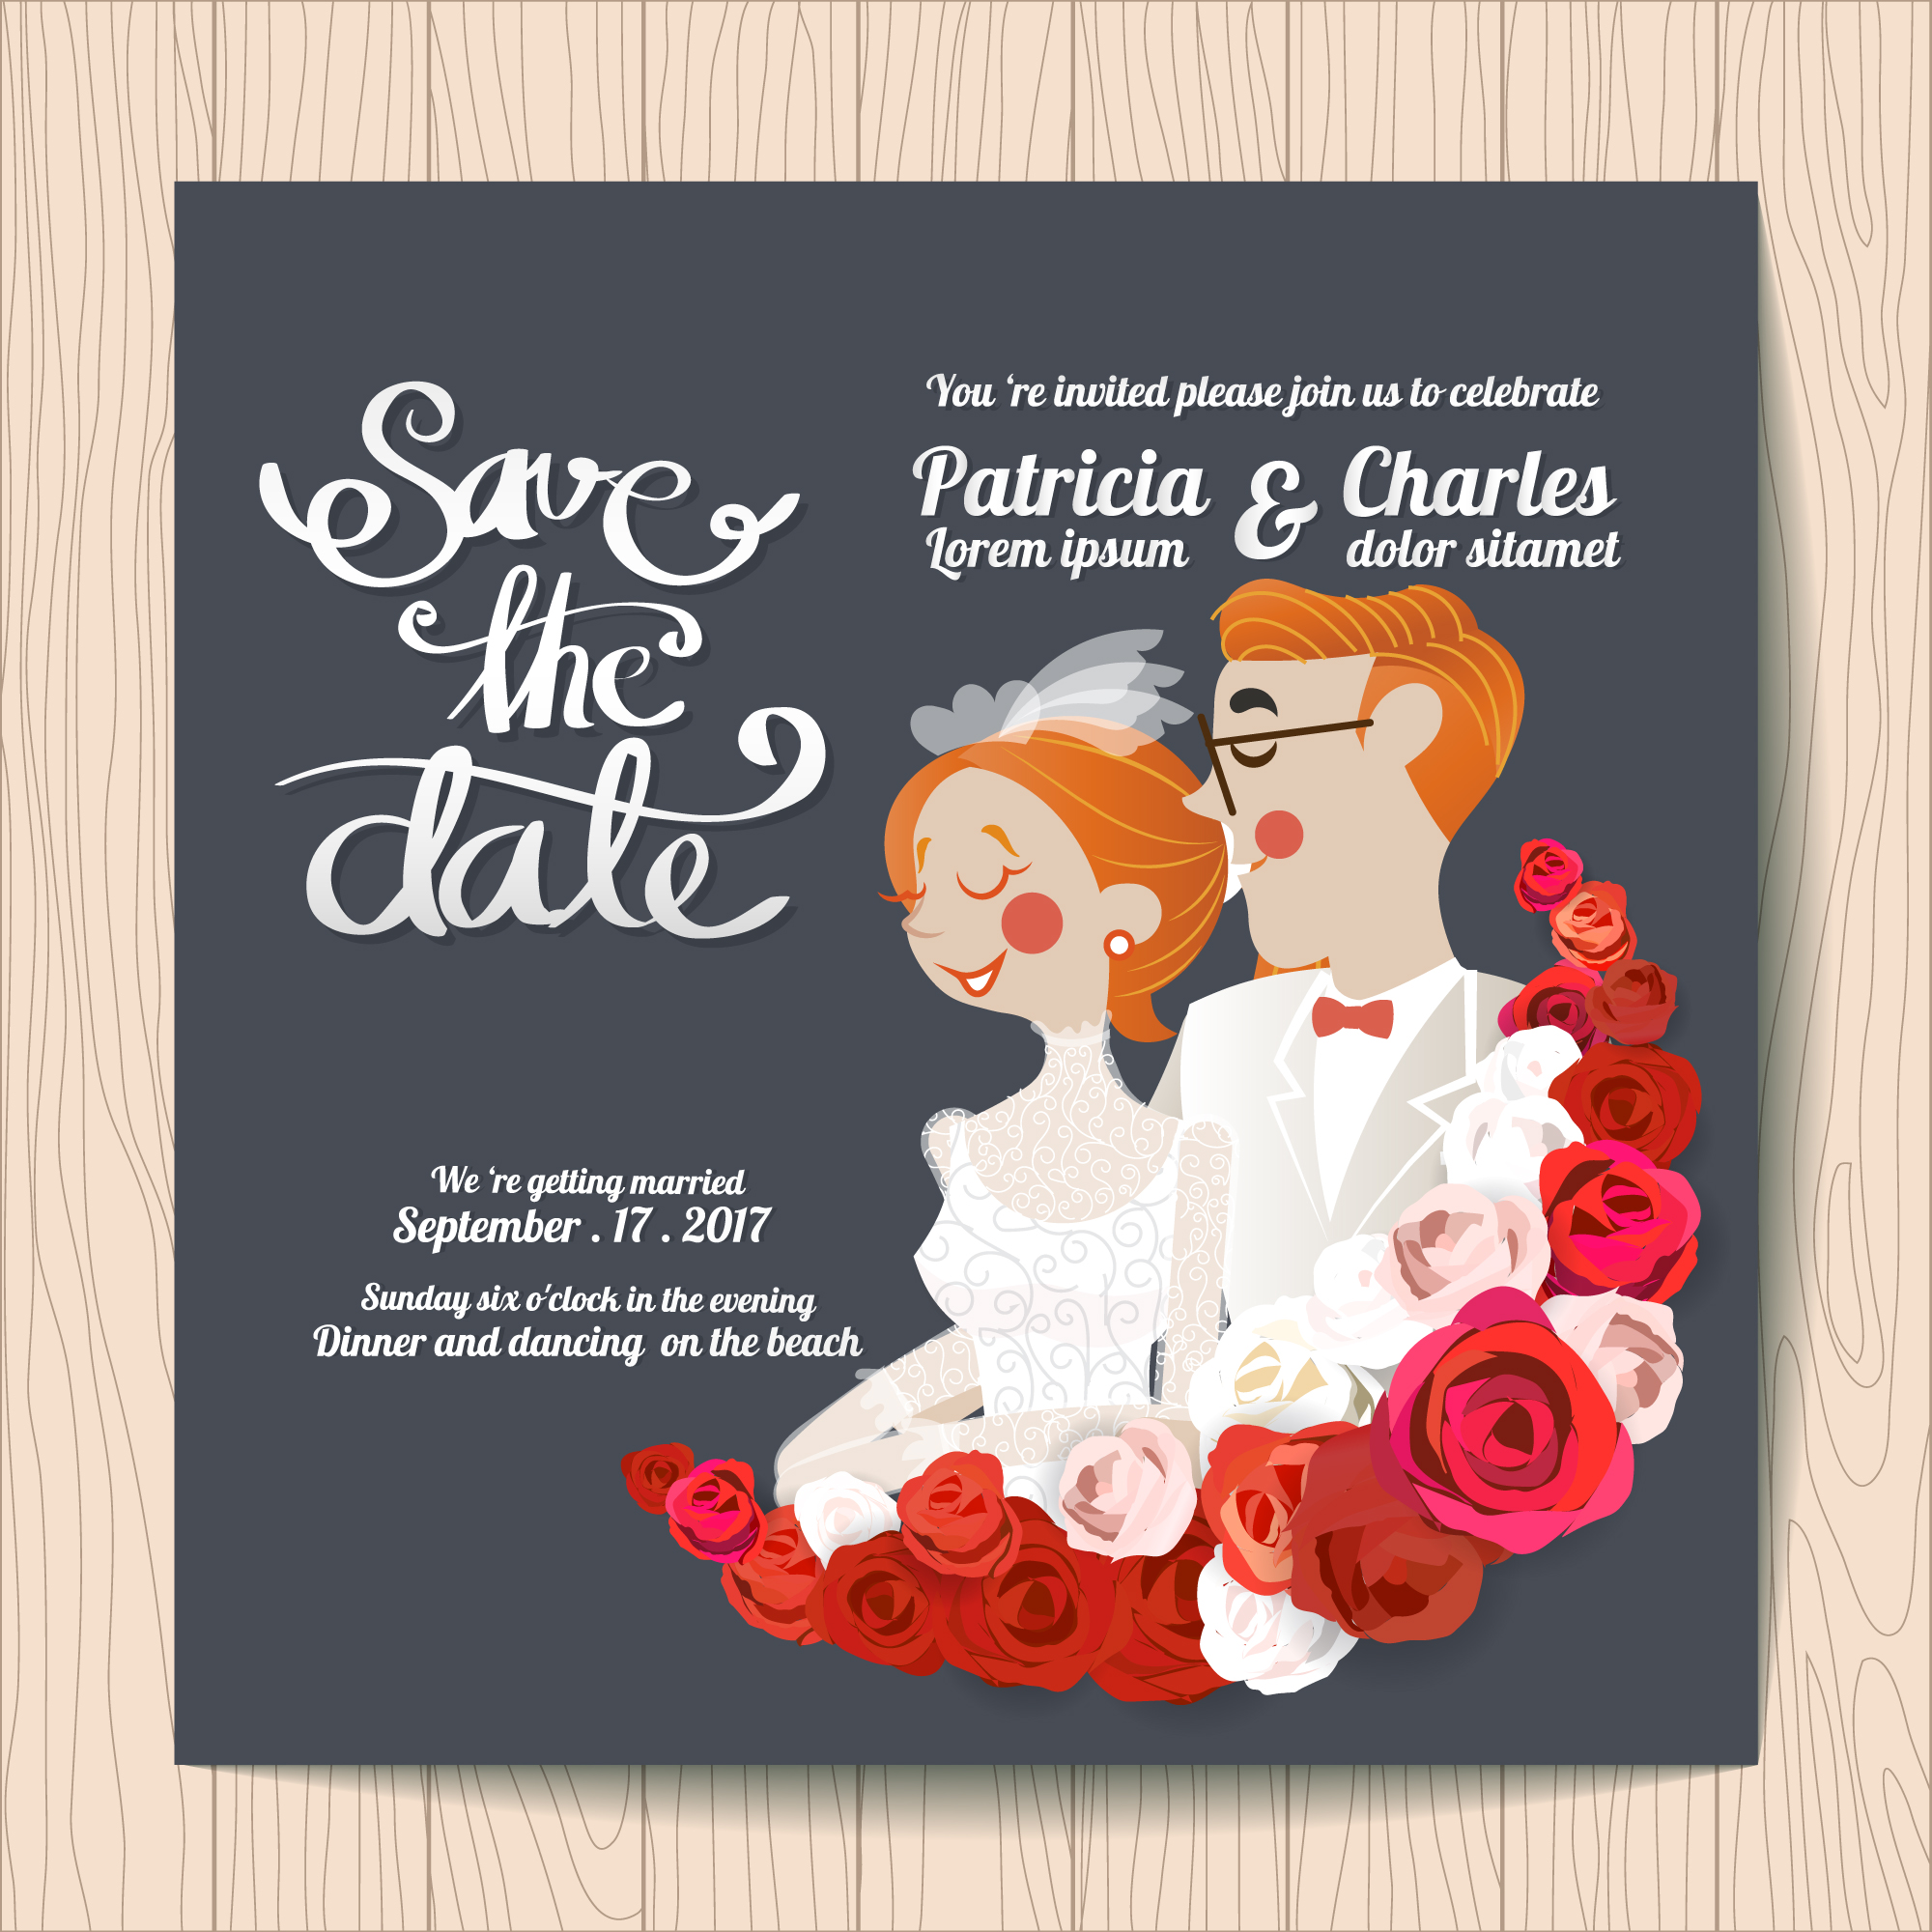 Wedding invitation with characters and red roses